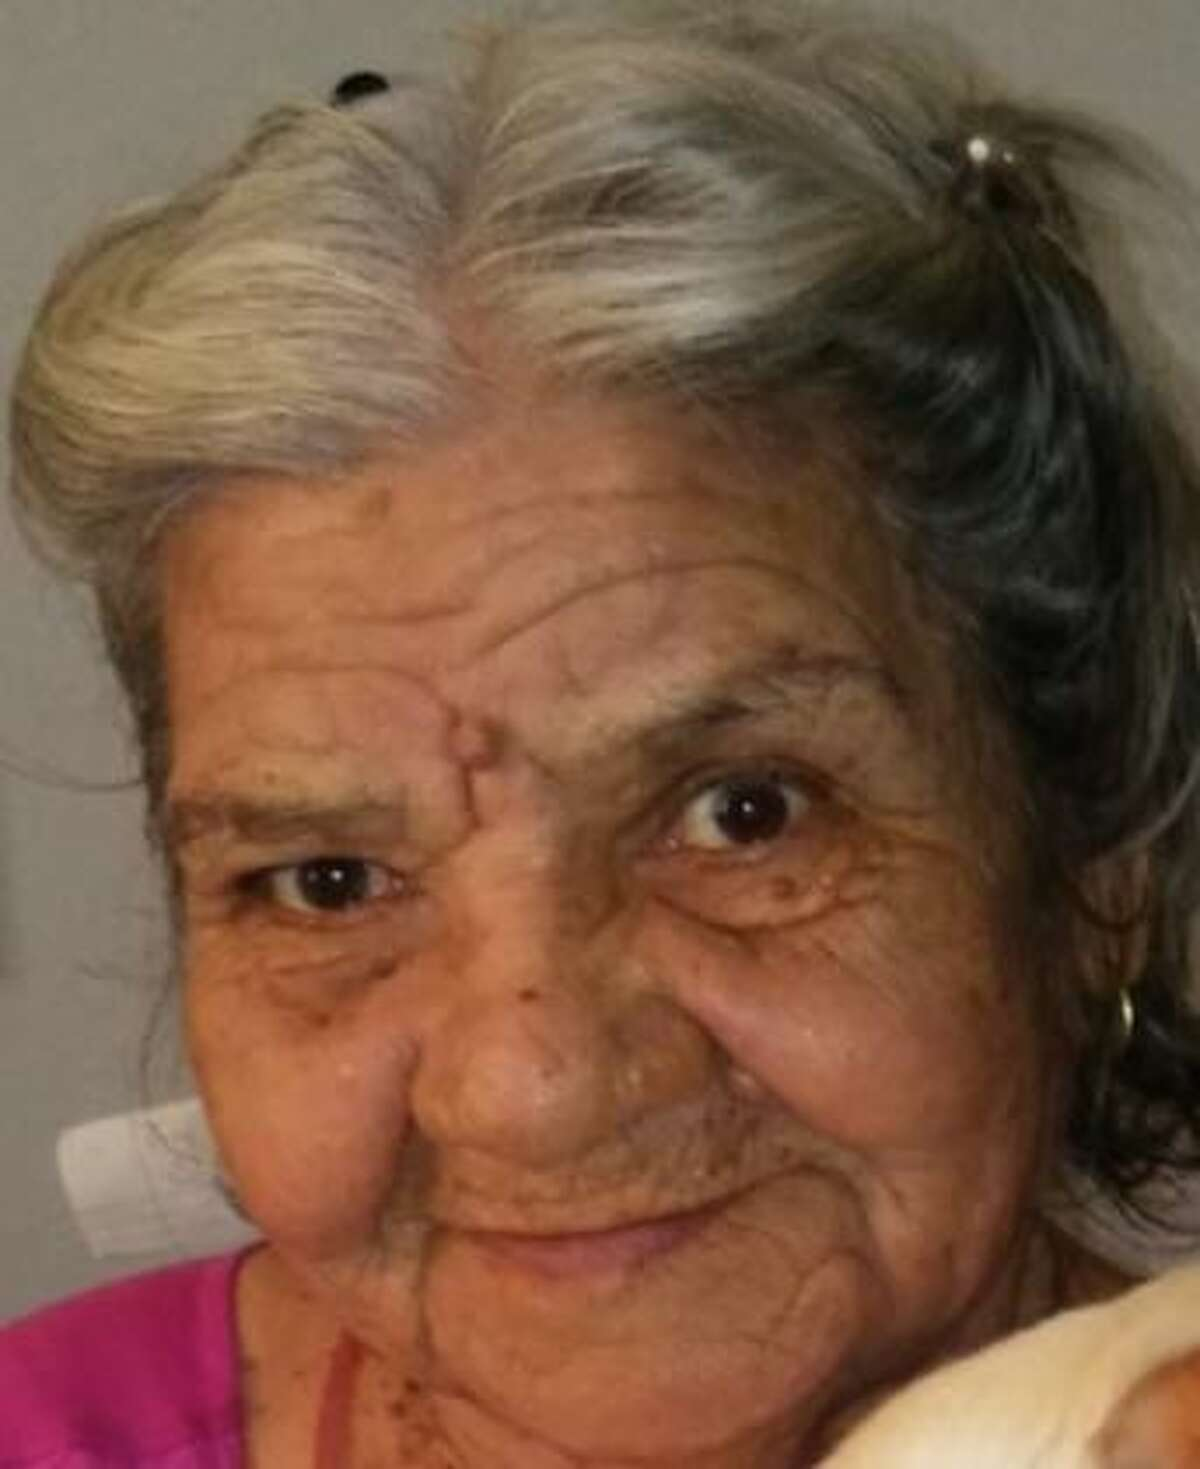 Simona Pineda, who suffers from a medical condition that requires medication, was last seen in the 5800 block of Liberty Bell. She has straight ear top length hair.